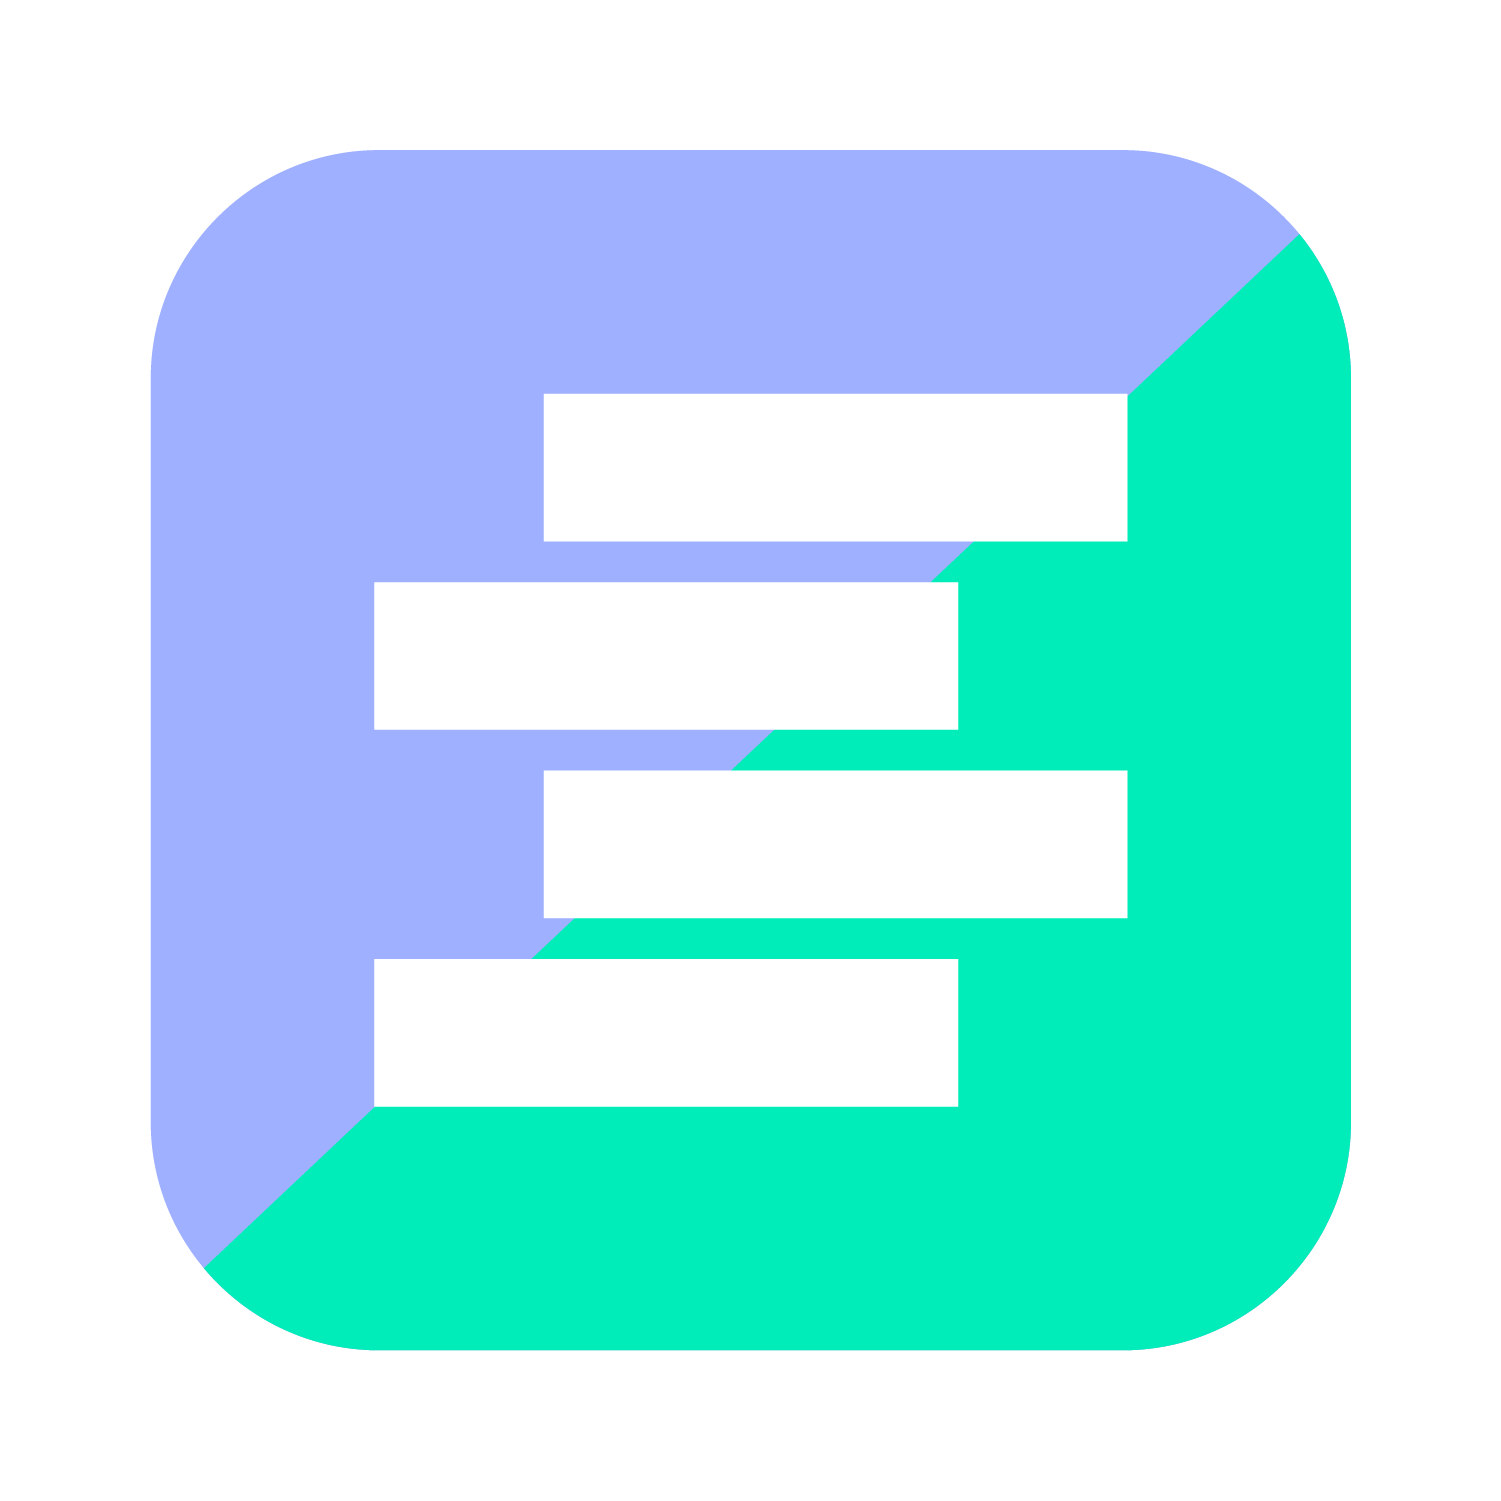 cognitive to balance icon